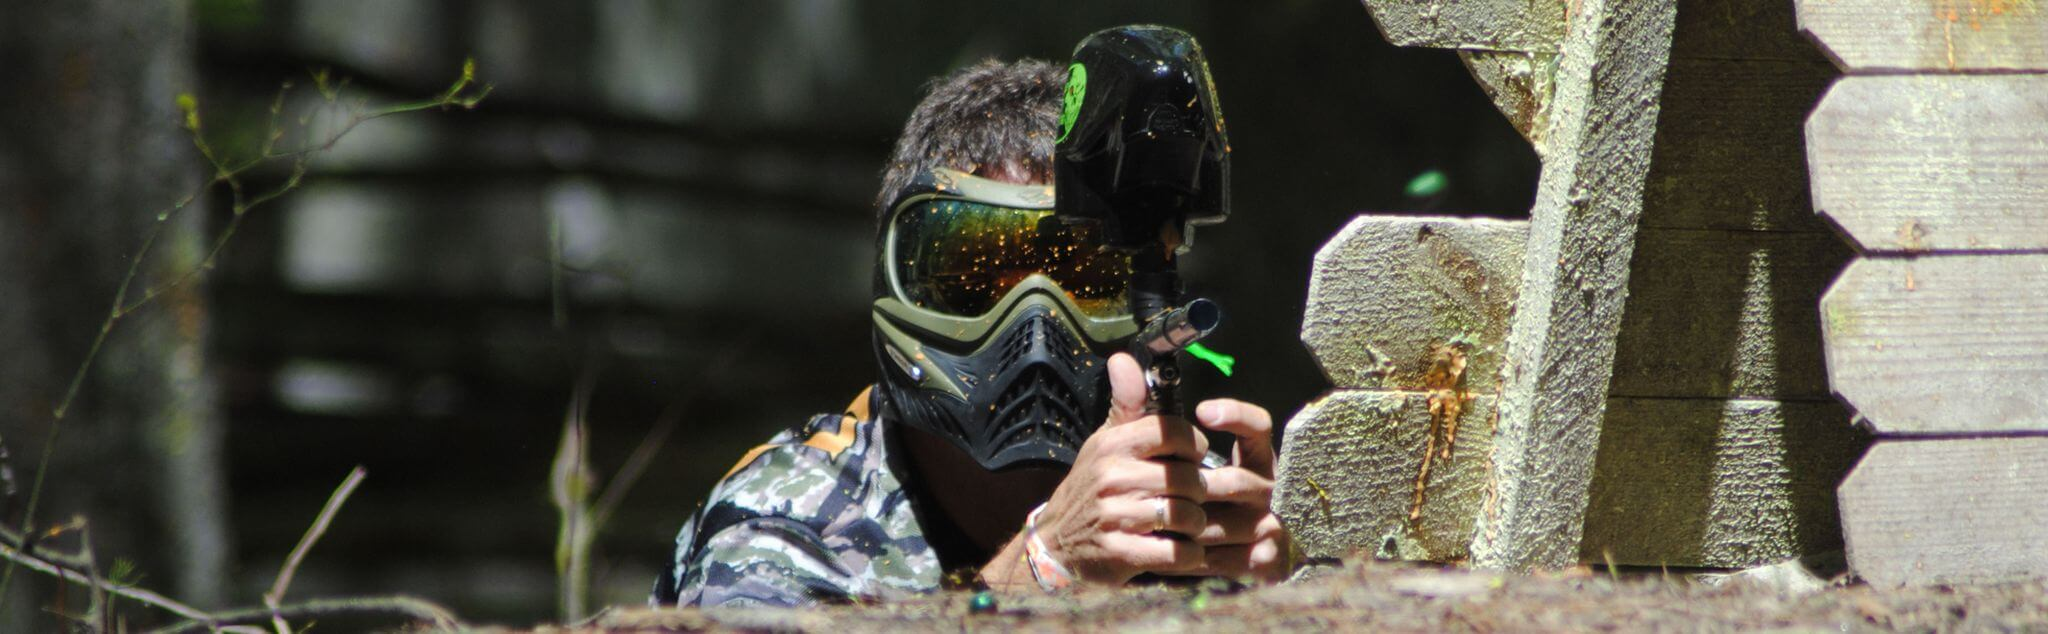 Paintball in Tlalpan